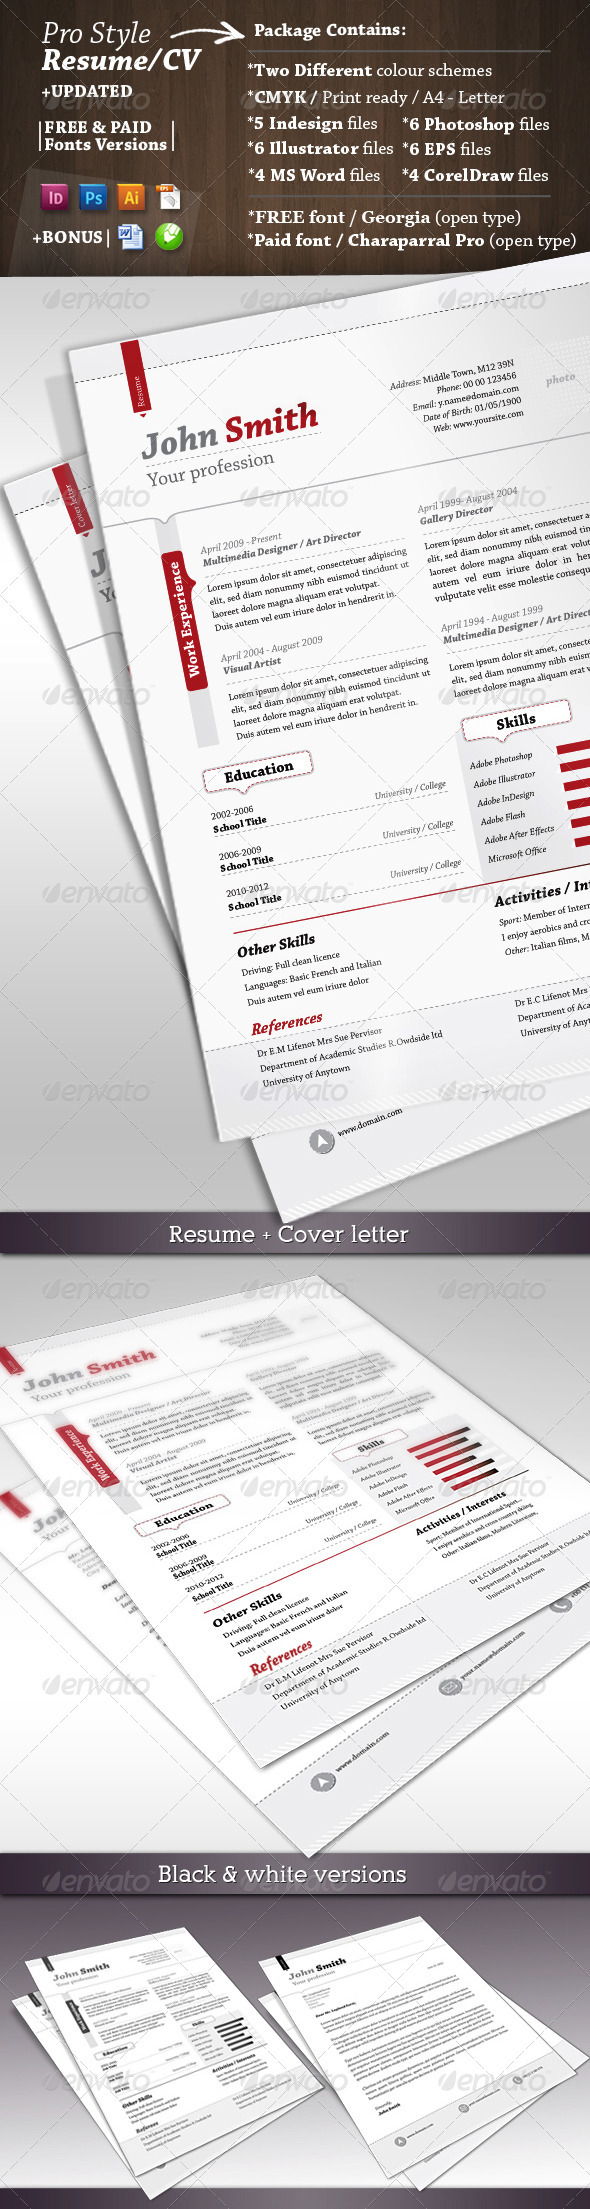 GraphicRiver Pro Style Resume & Cover Letter 1929357